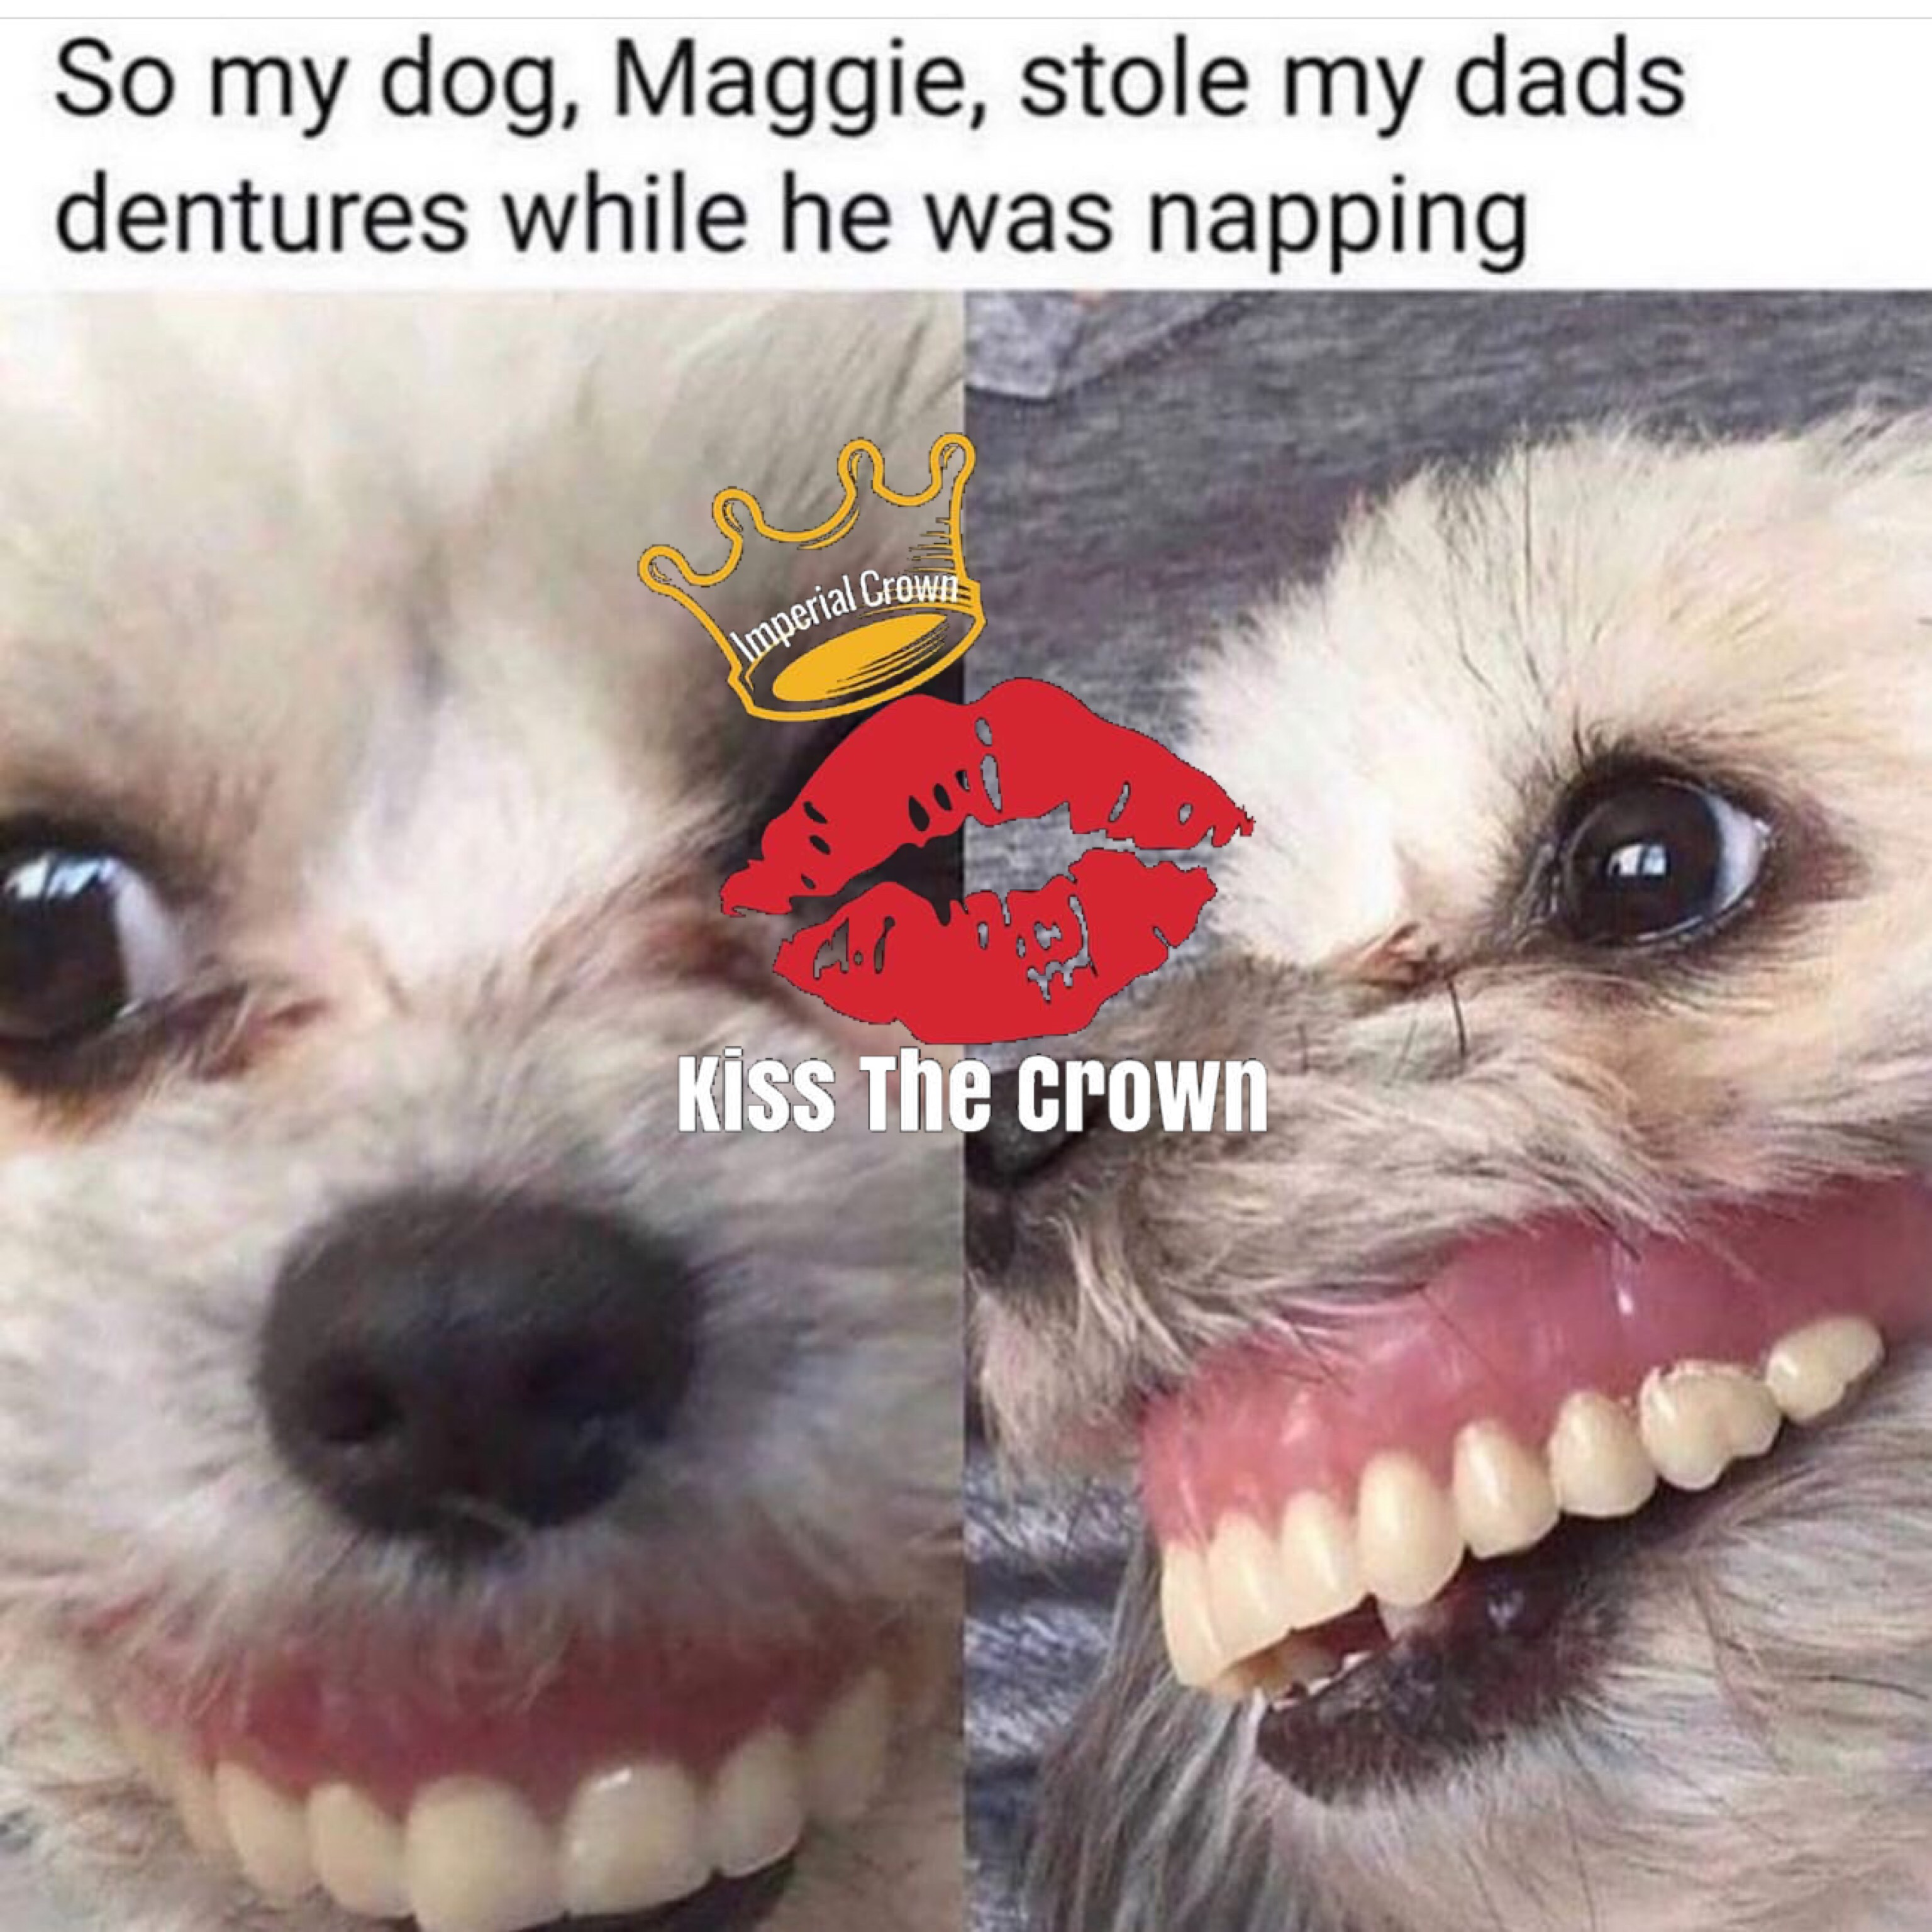 So my dog maggie stole my dads dentures while he was napping